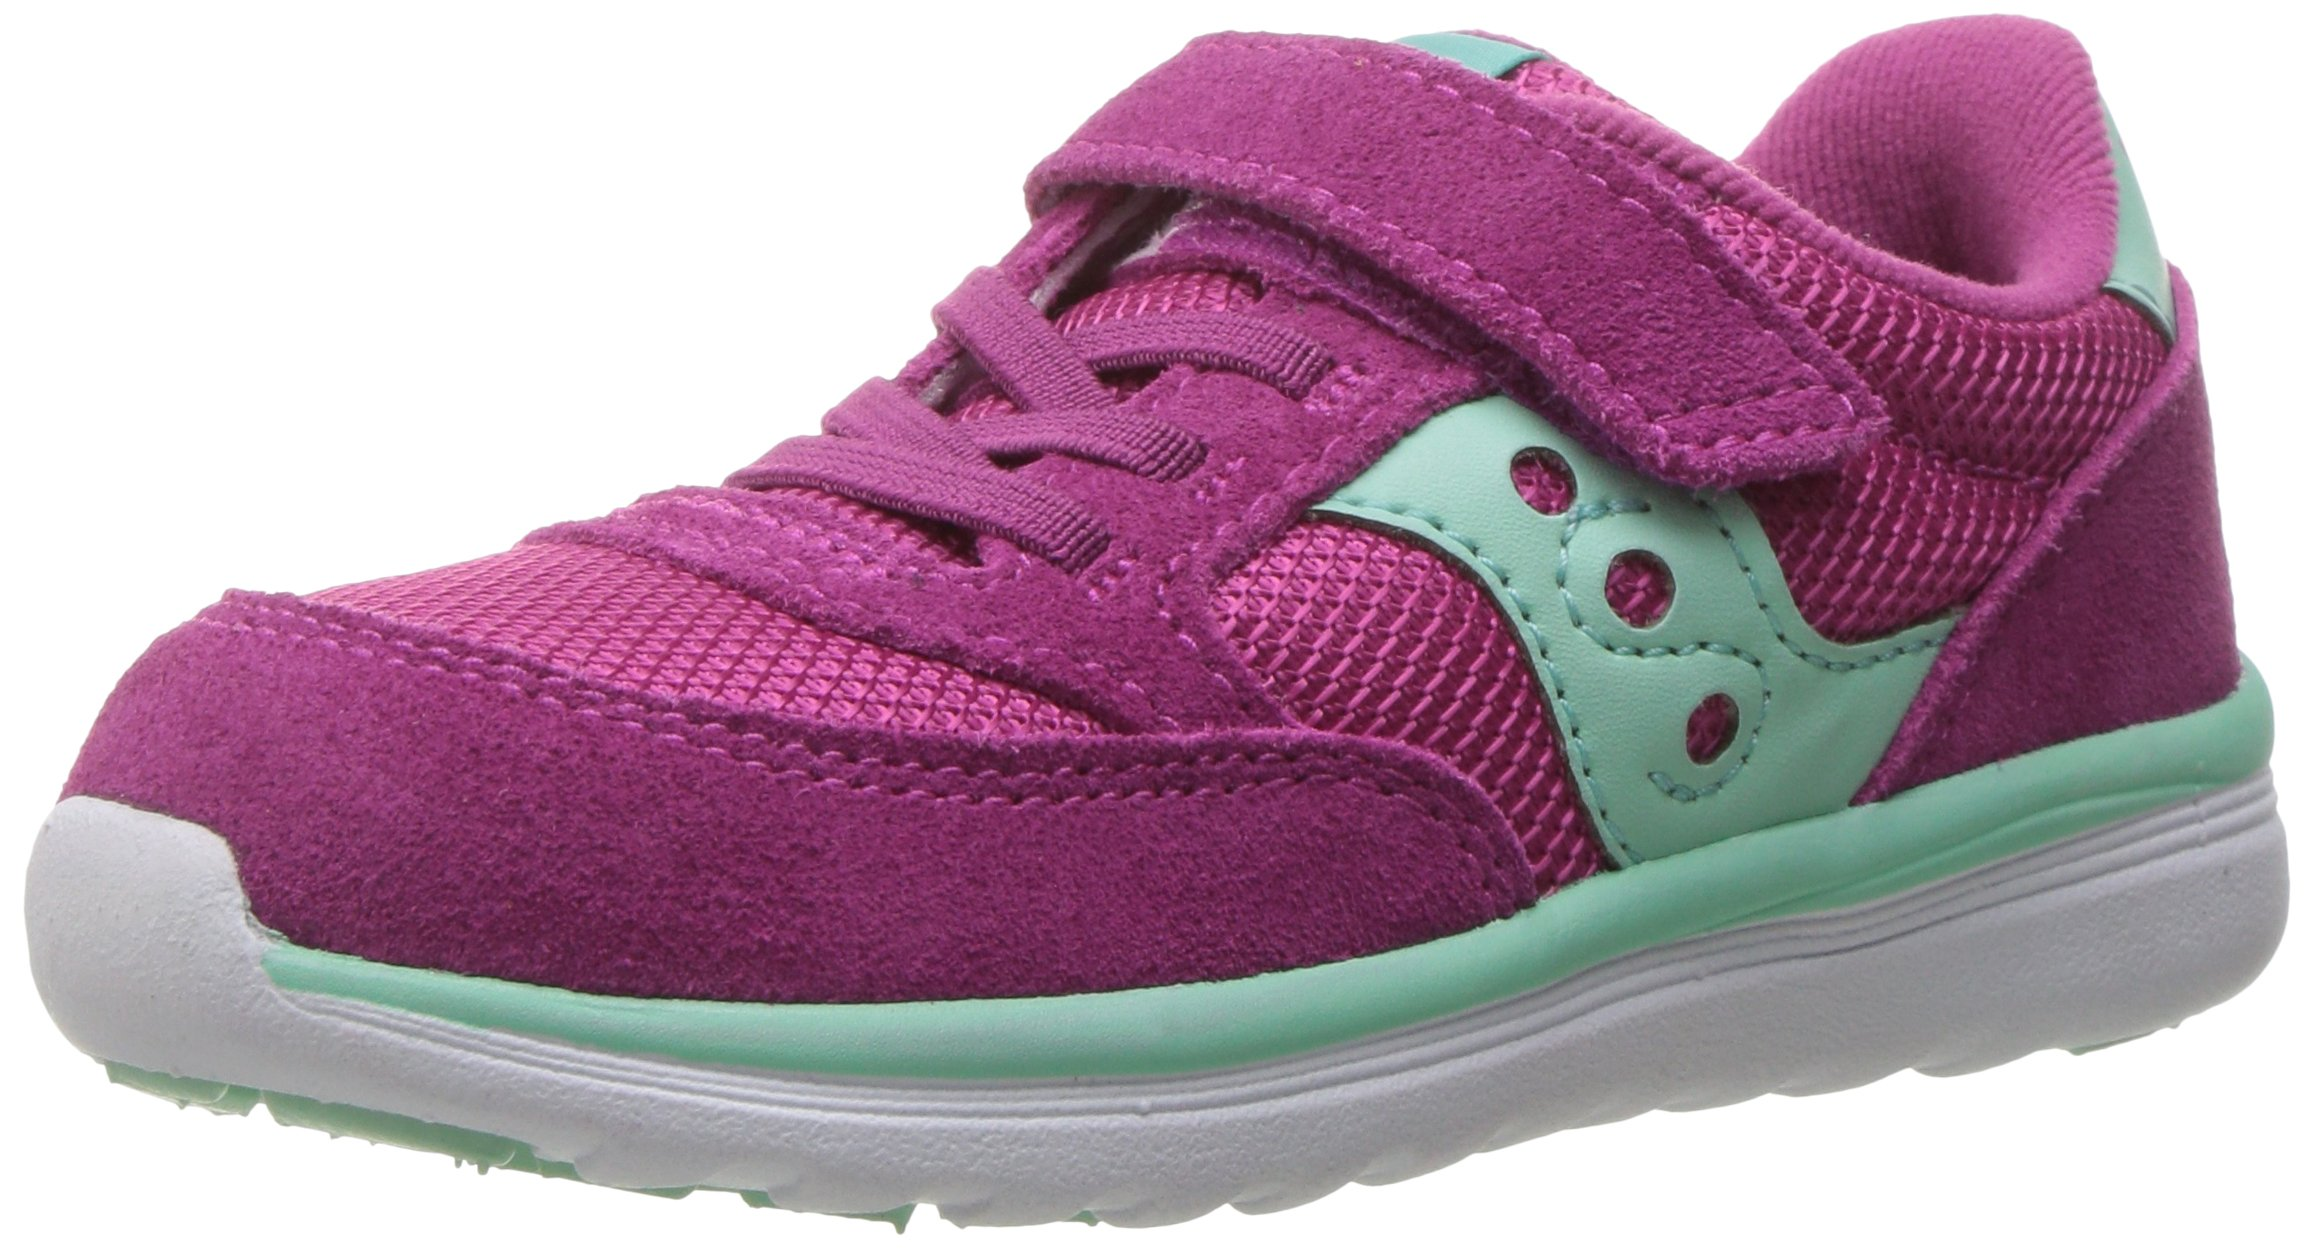 Saucony Baby Jazz Lite Sneaker (Toddler/Little Kid/Big Kid), Pink/Turquoise, 4 W US Toddler